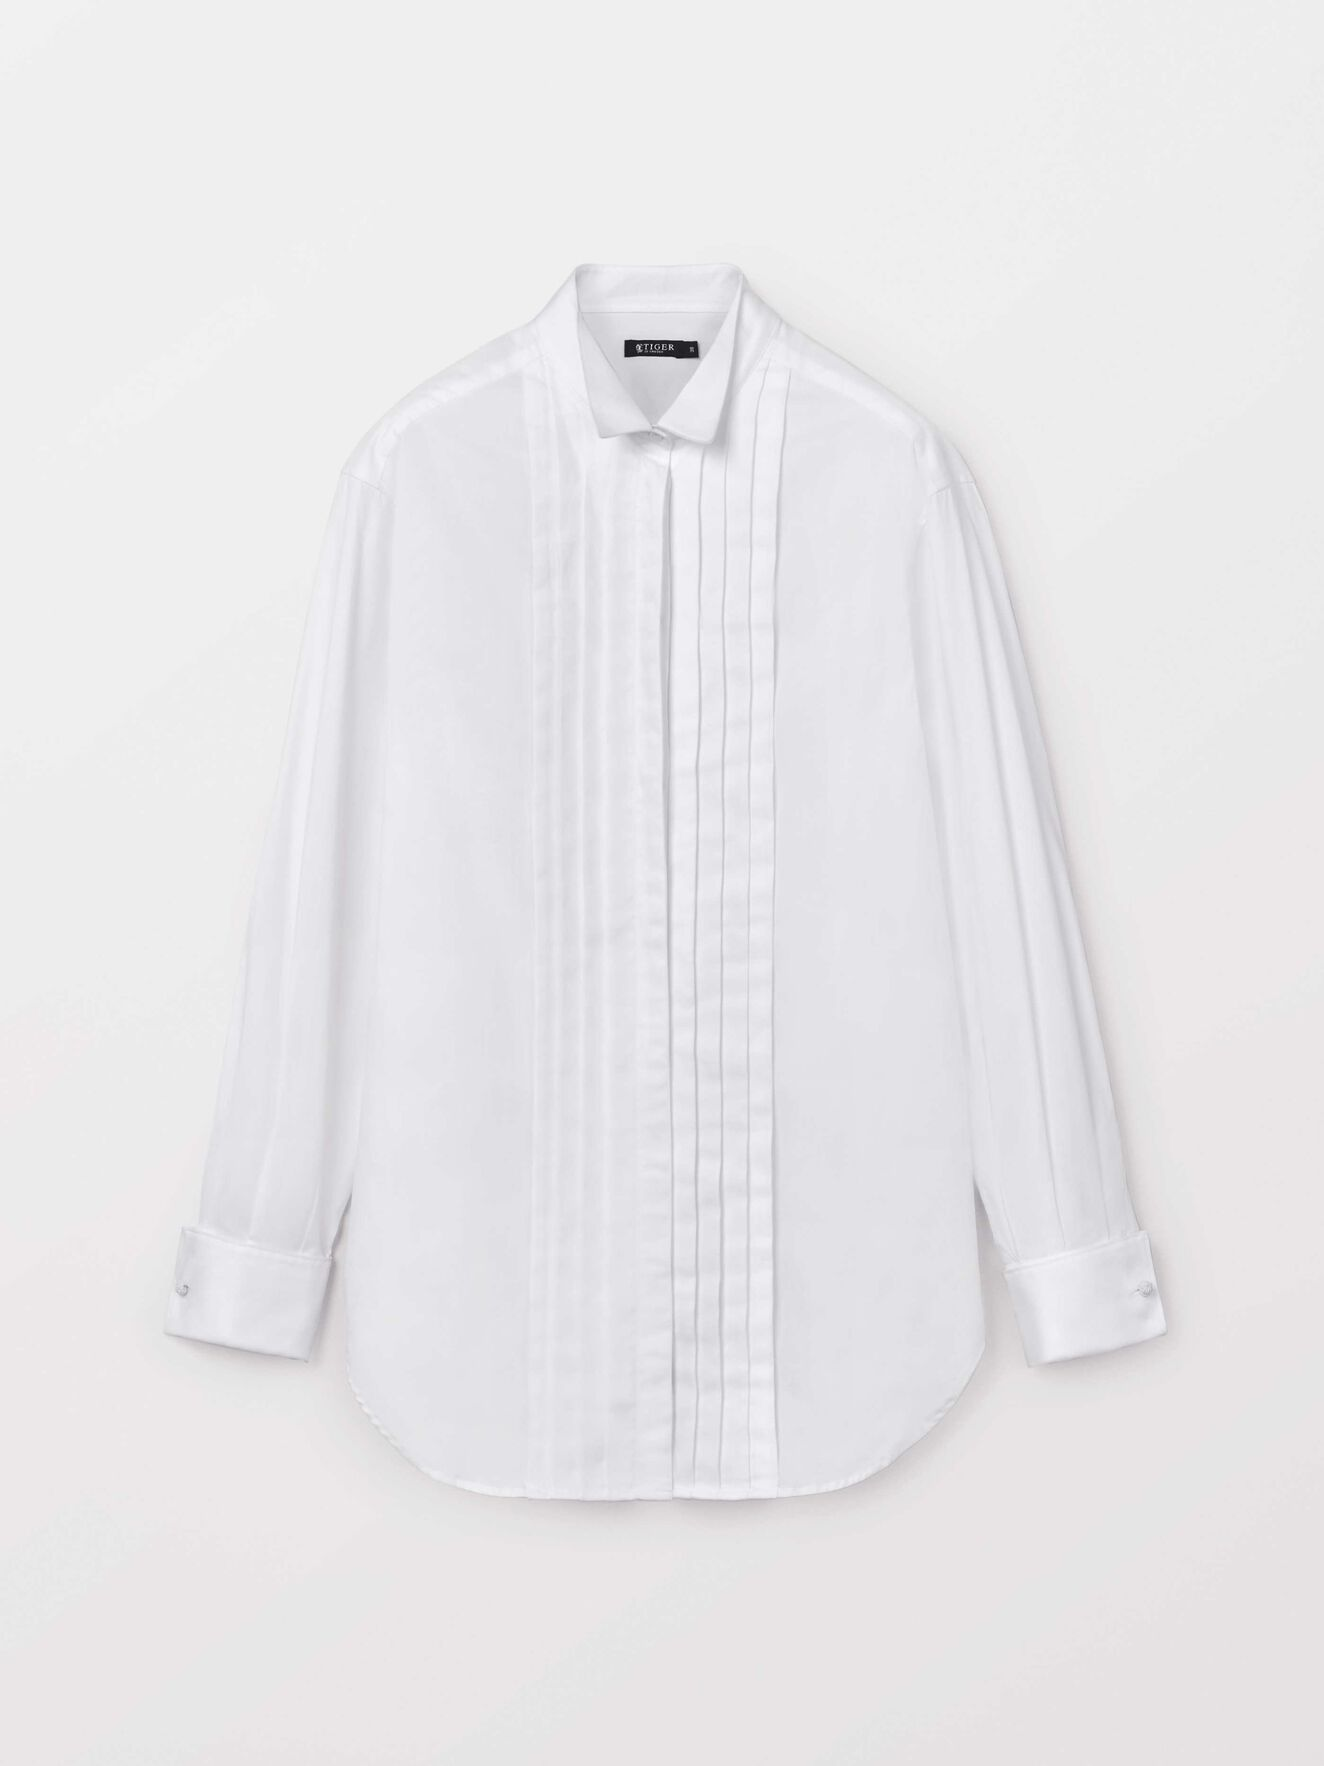 Kolv Co Shirt in Bright White from Tiger of Sweden